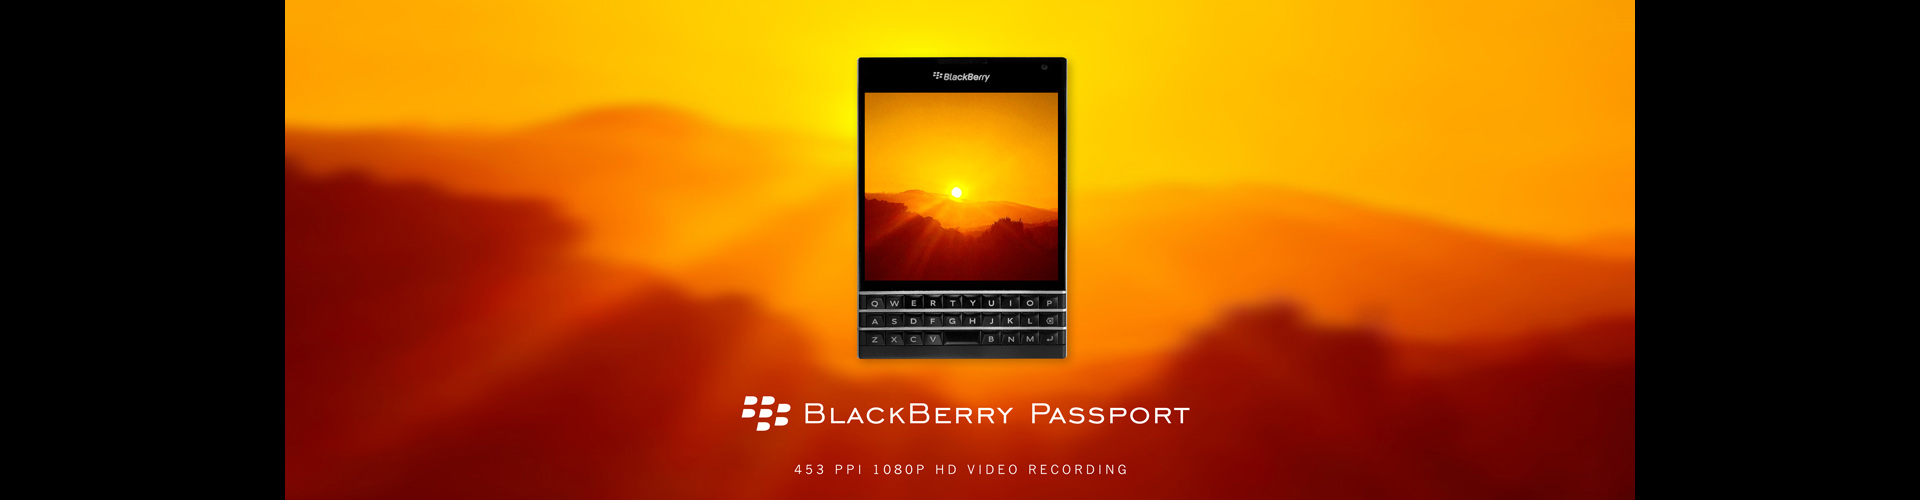 BlackBerry Passport 5